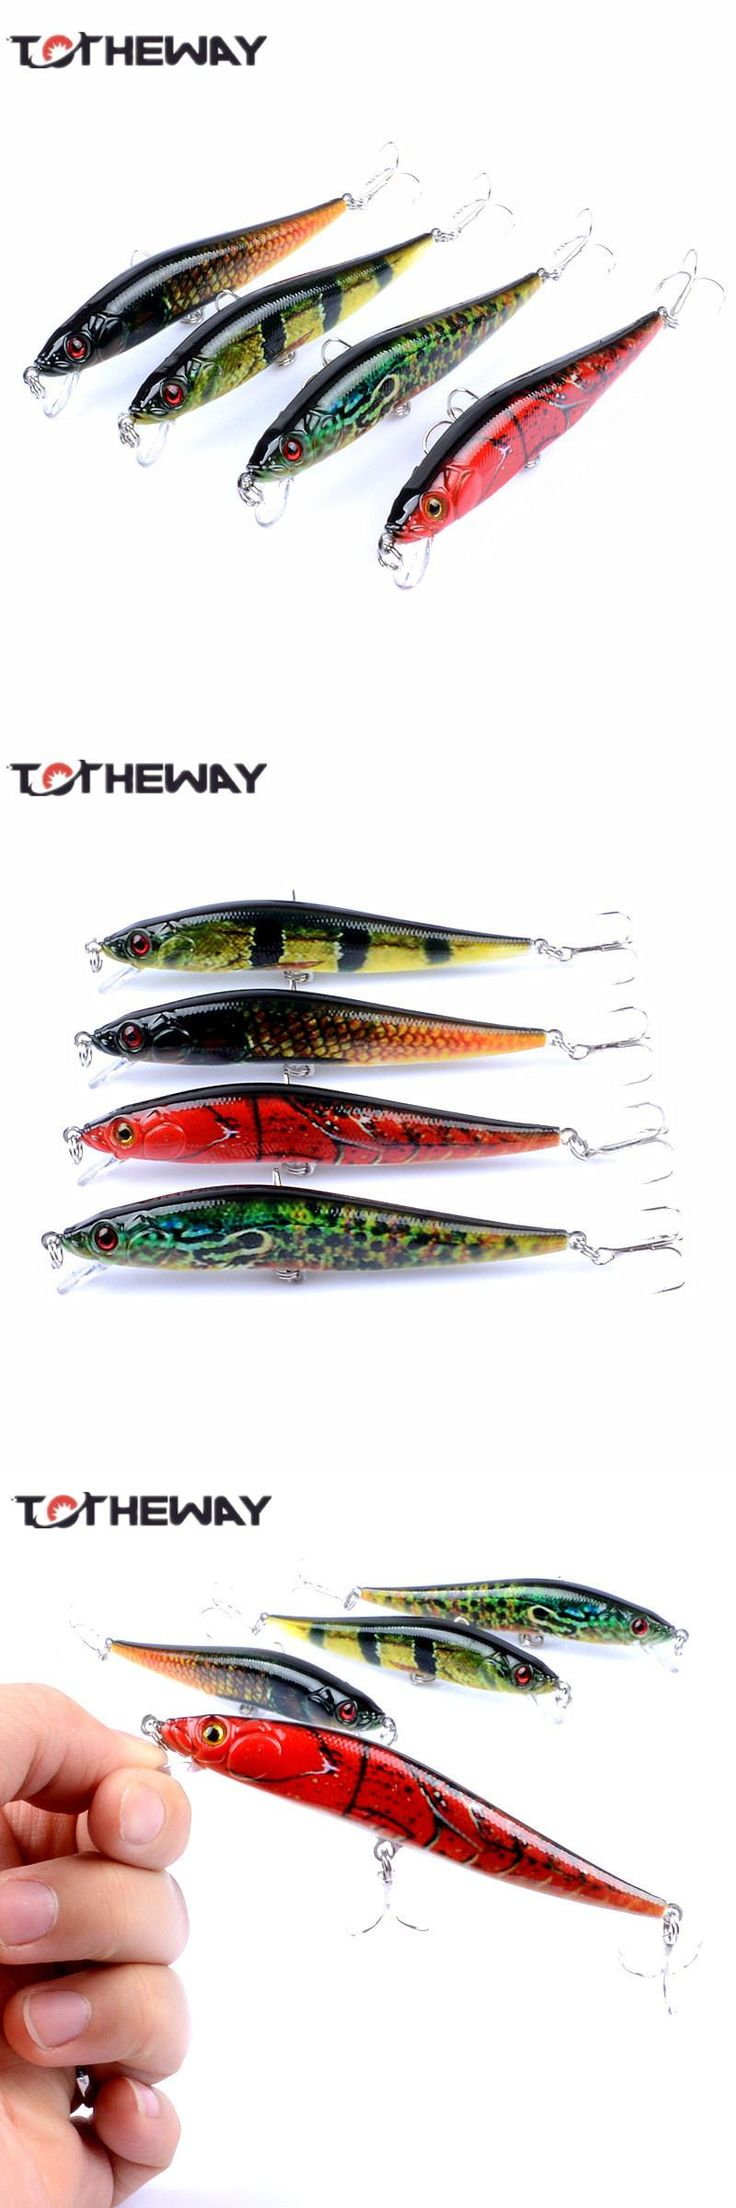 [Visit to Buy] 1PCS Lifelike 10cm 10g Minow Wobblers Hard Fishing Tackle Swim bait Crank Bait Bass Fishing Lures 4 Colors fishing tackle #Advertisement